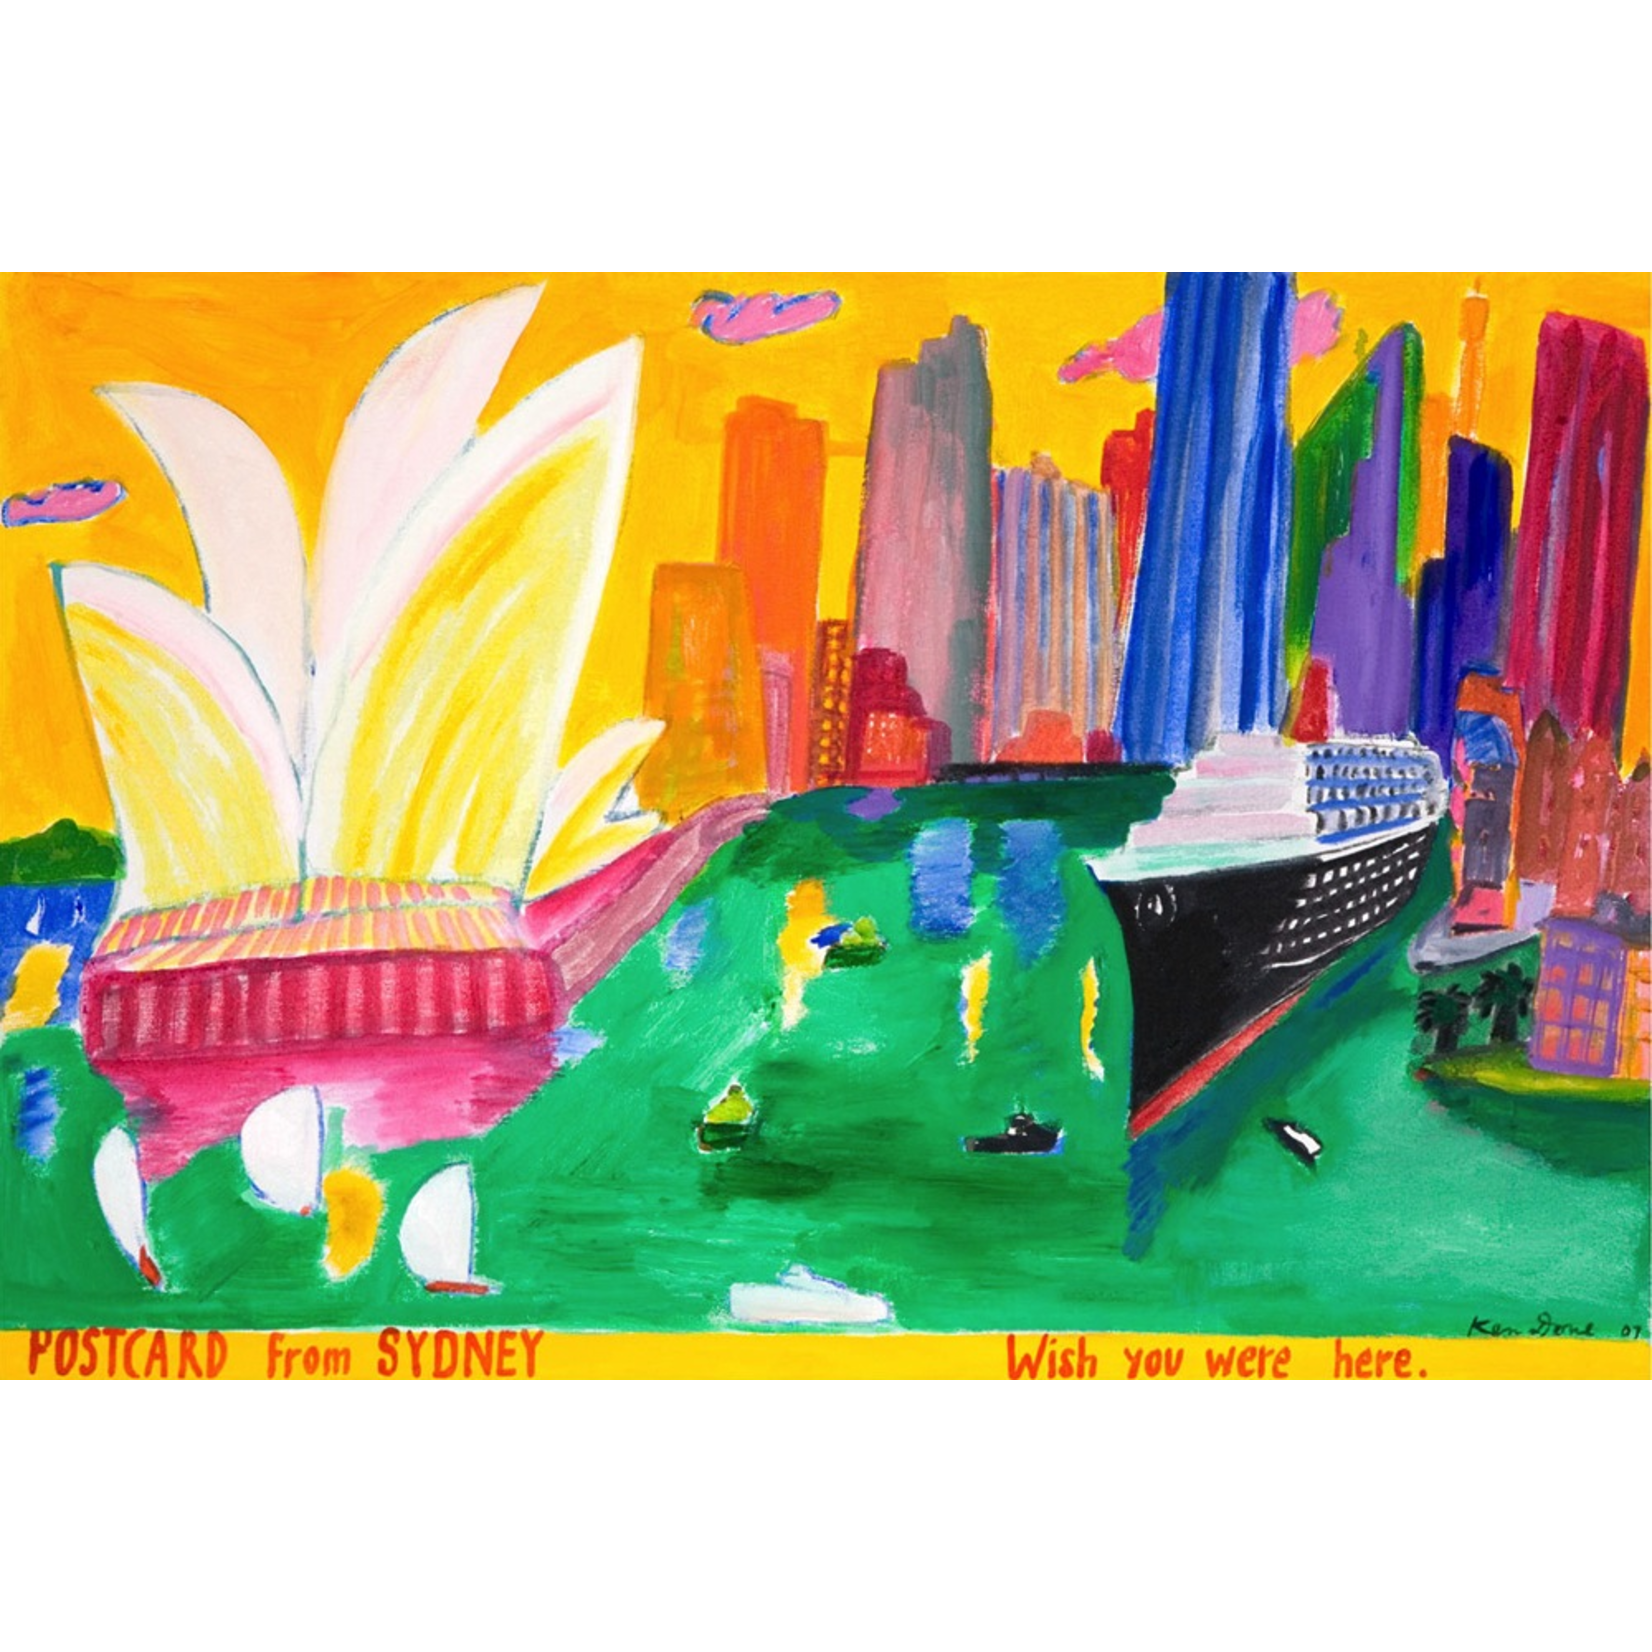 Limited Edition Prints Postcard from Sydney, 2007